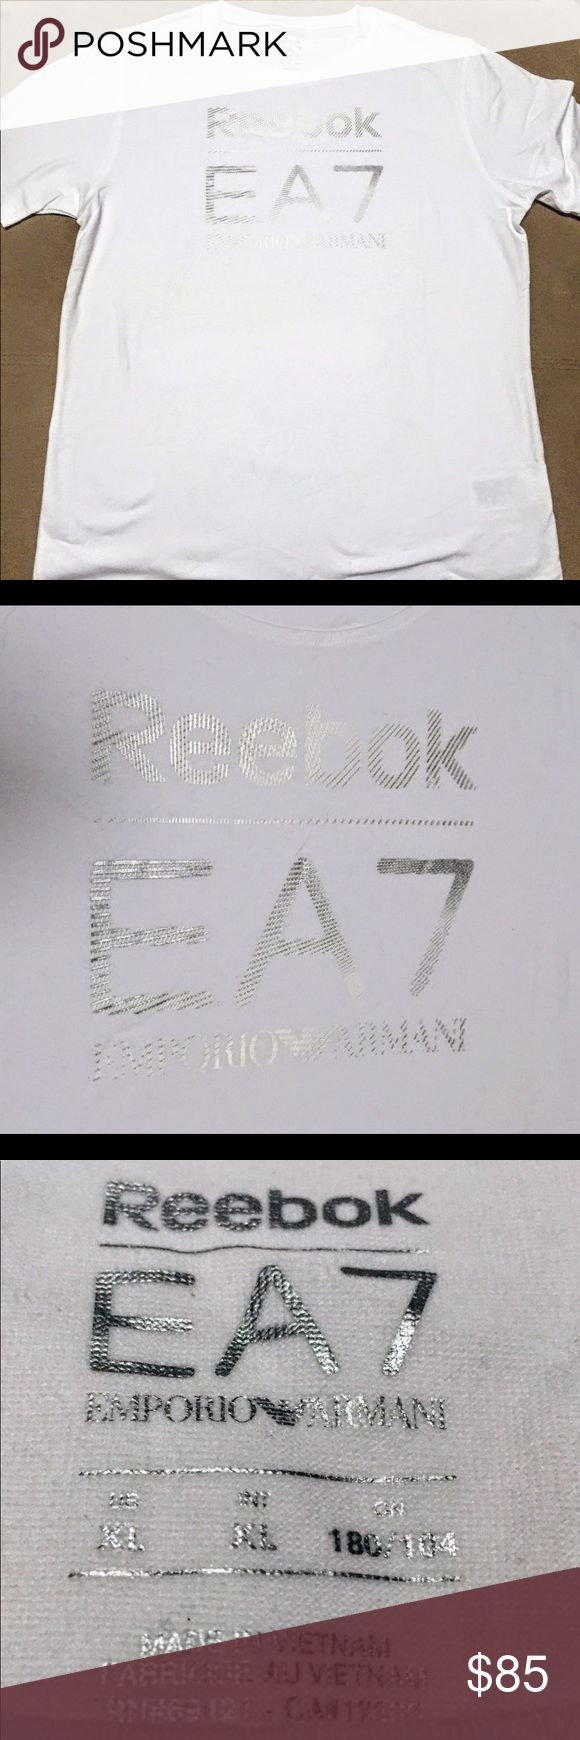 NWT $95 Armani x Reebok Collab Tee ~ XL Brand new, never worn! This tee is from a Collab collection between Armani (Ea7) & Reebok. Great quality T-shirt!! • Fits True to size • White Tee with Silver graphics Armani Shirts Tees - Short Sleeve